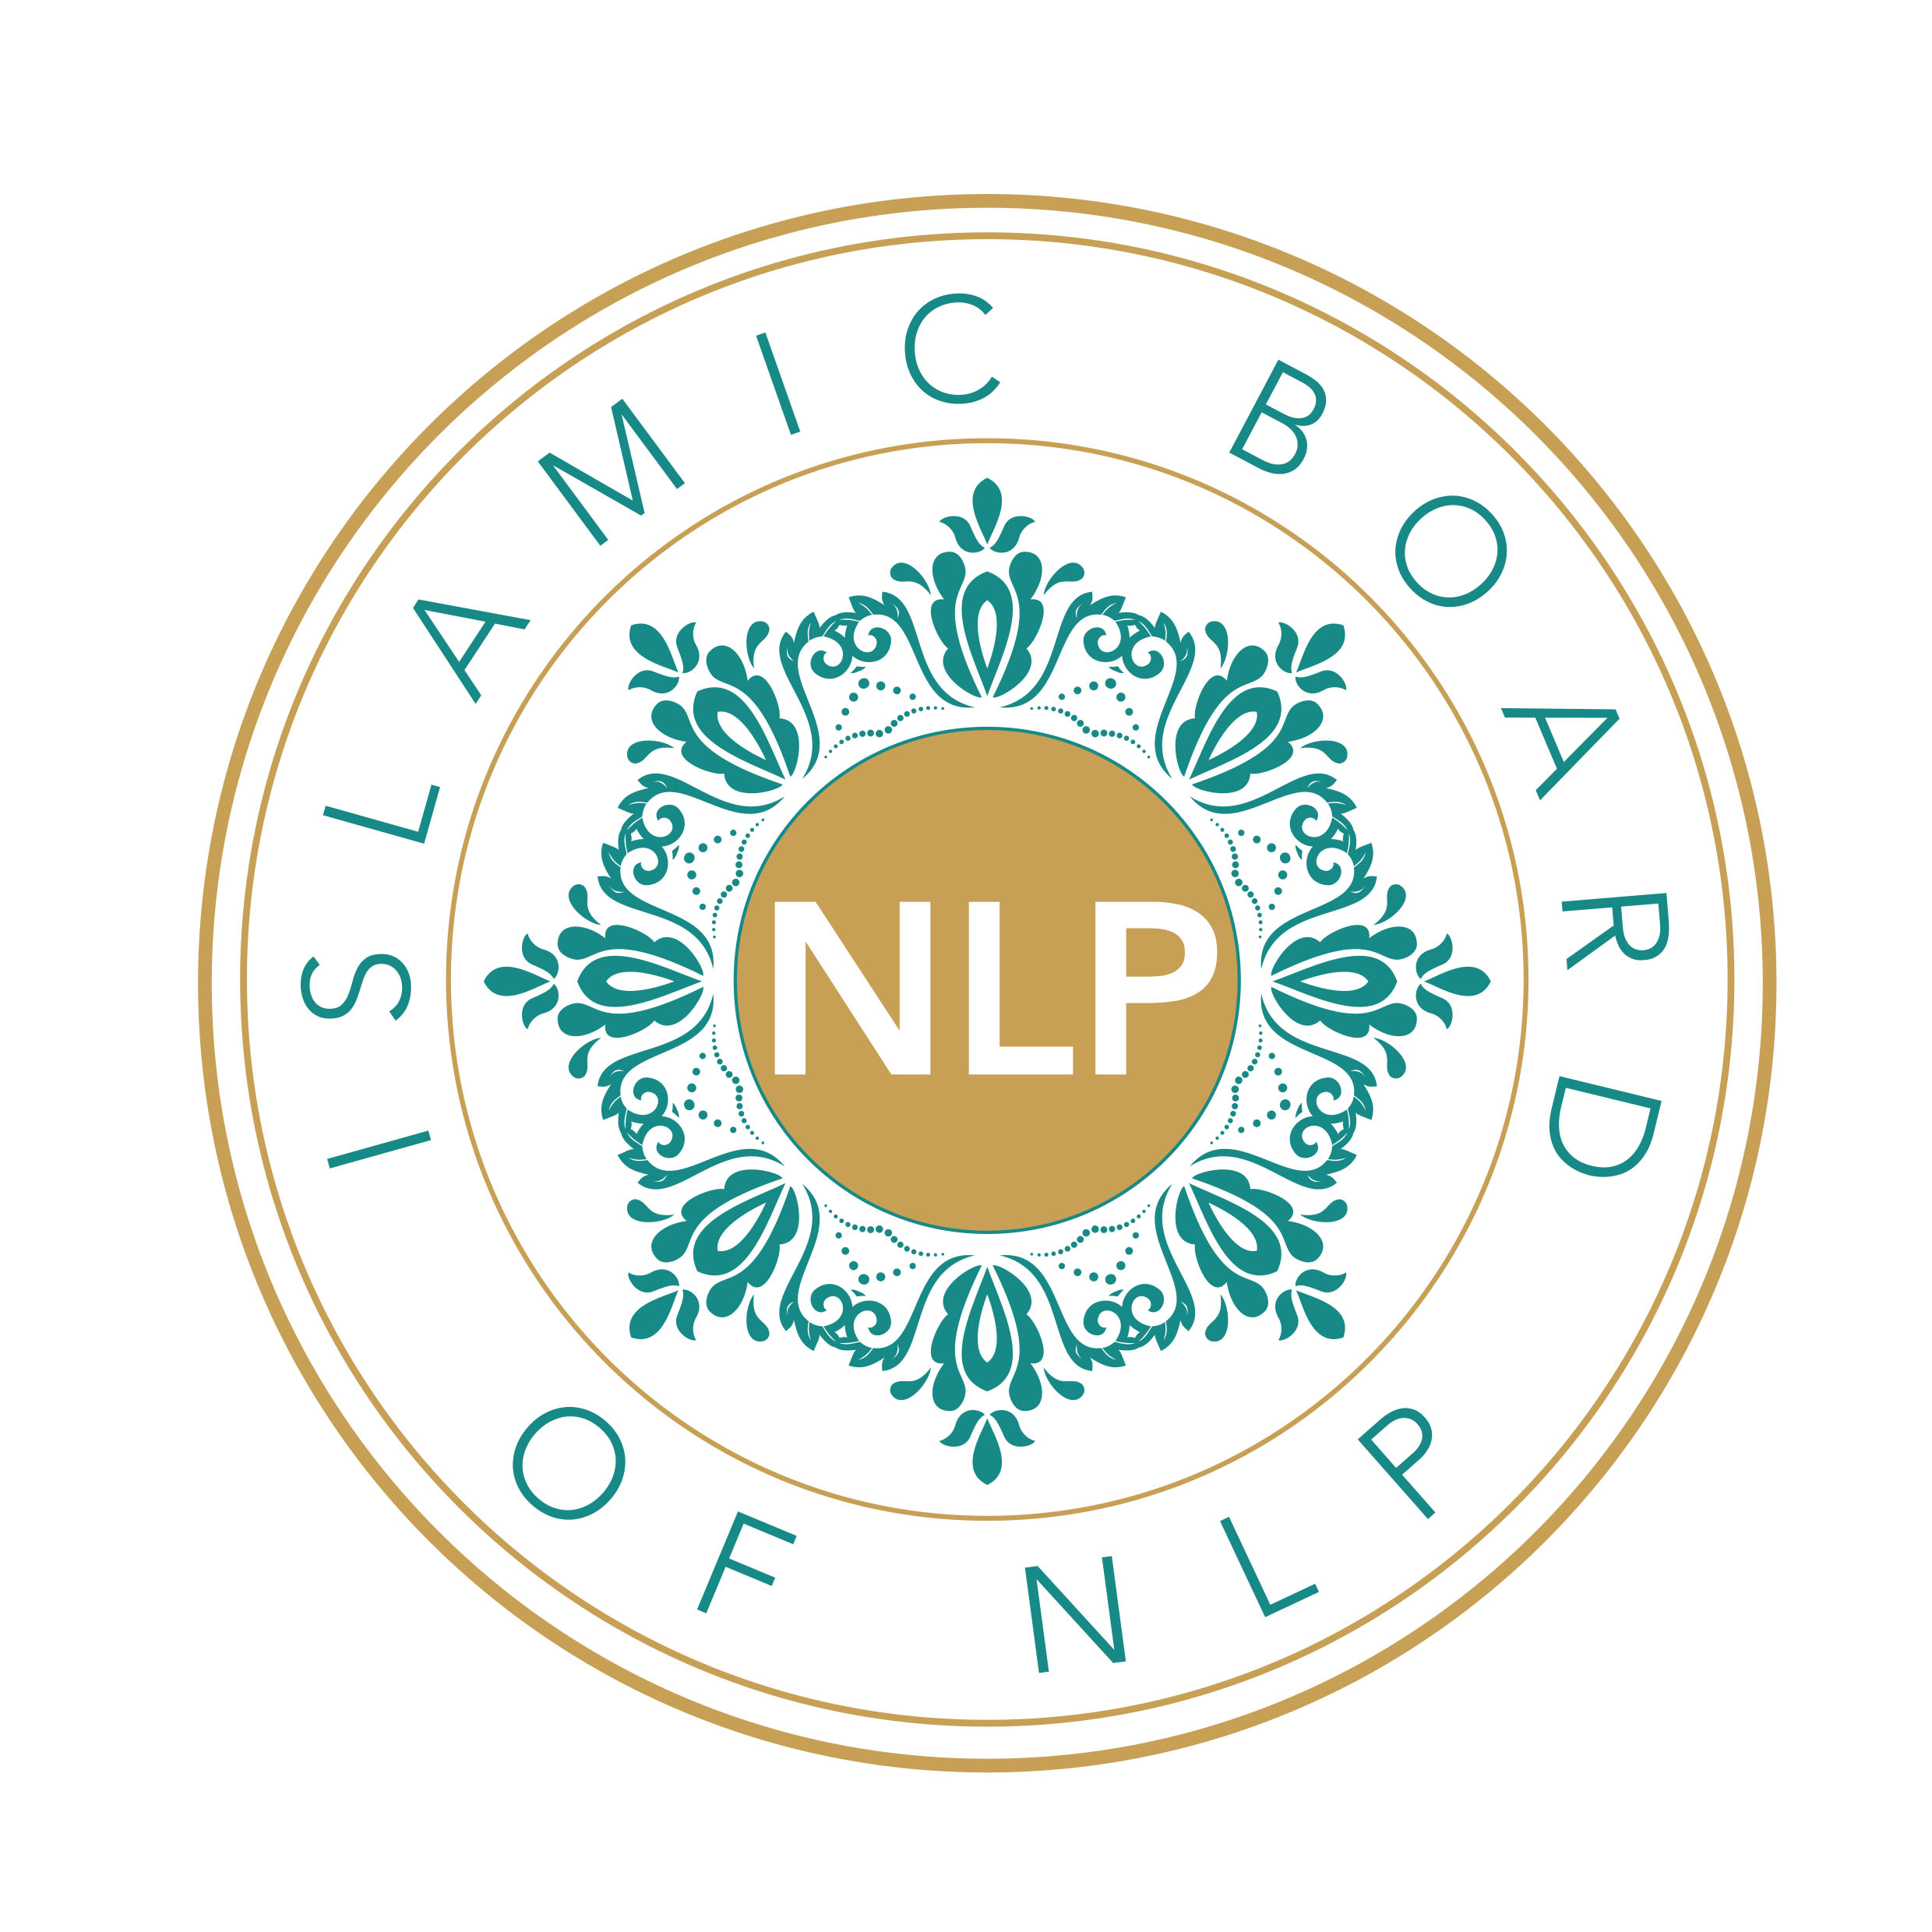 Ib nlp certification islamic board of nlp certification xflitez Images